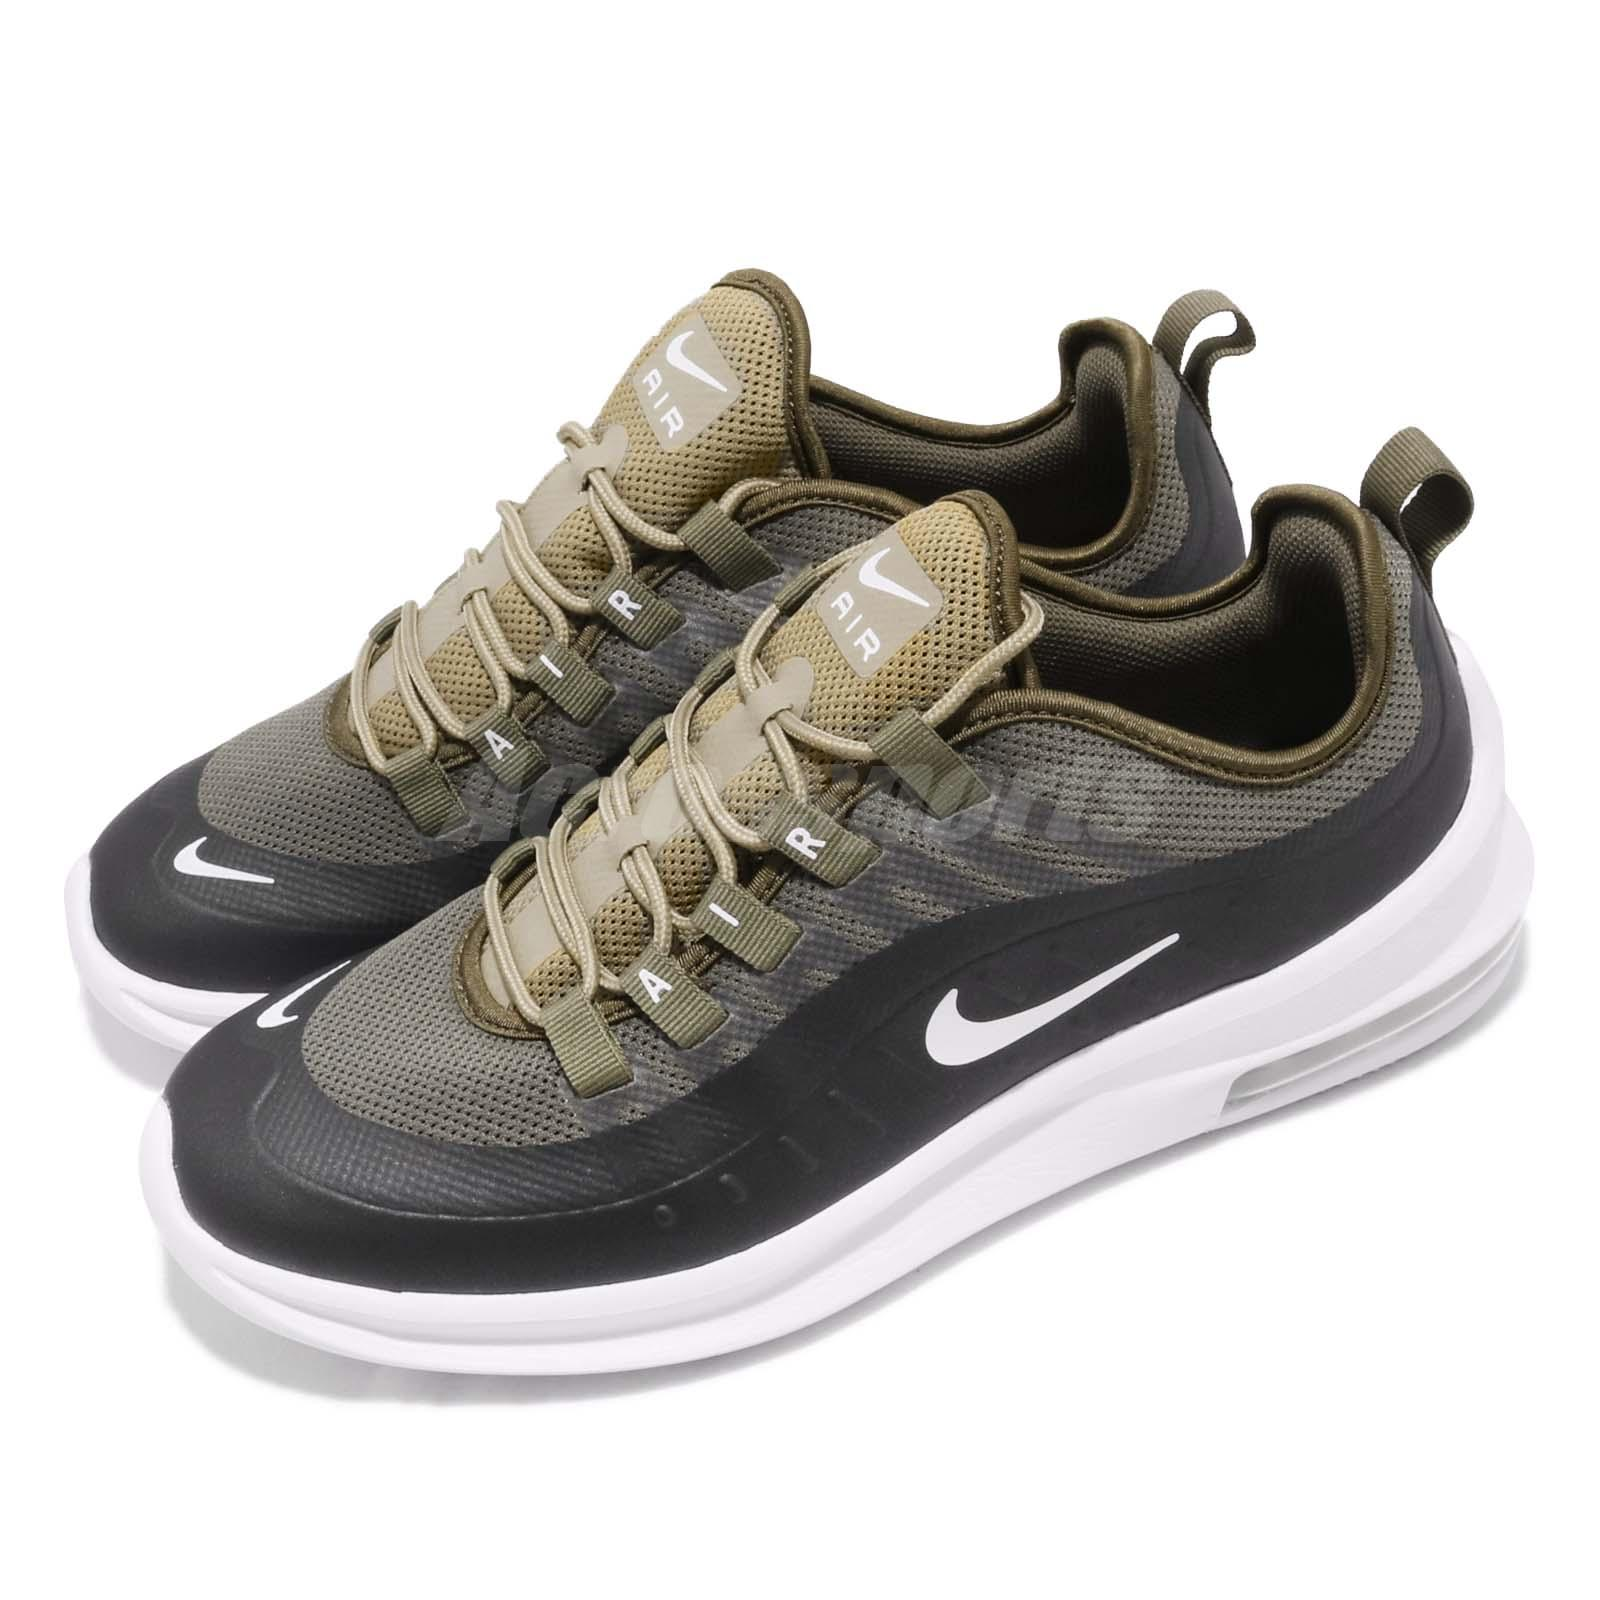 size 40 7cb02 a0f41 Details about Nike Air Max Axis Medium Olive Green White Mens Running Shoes  AA2146-200